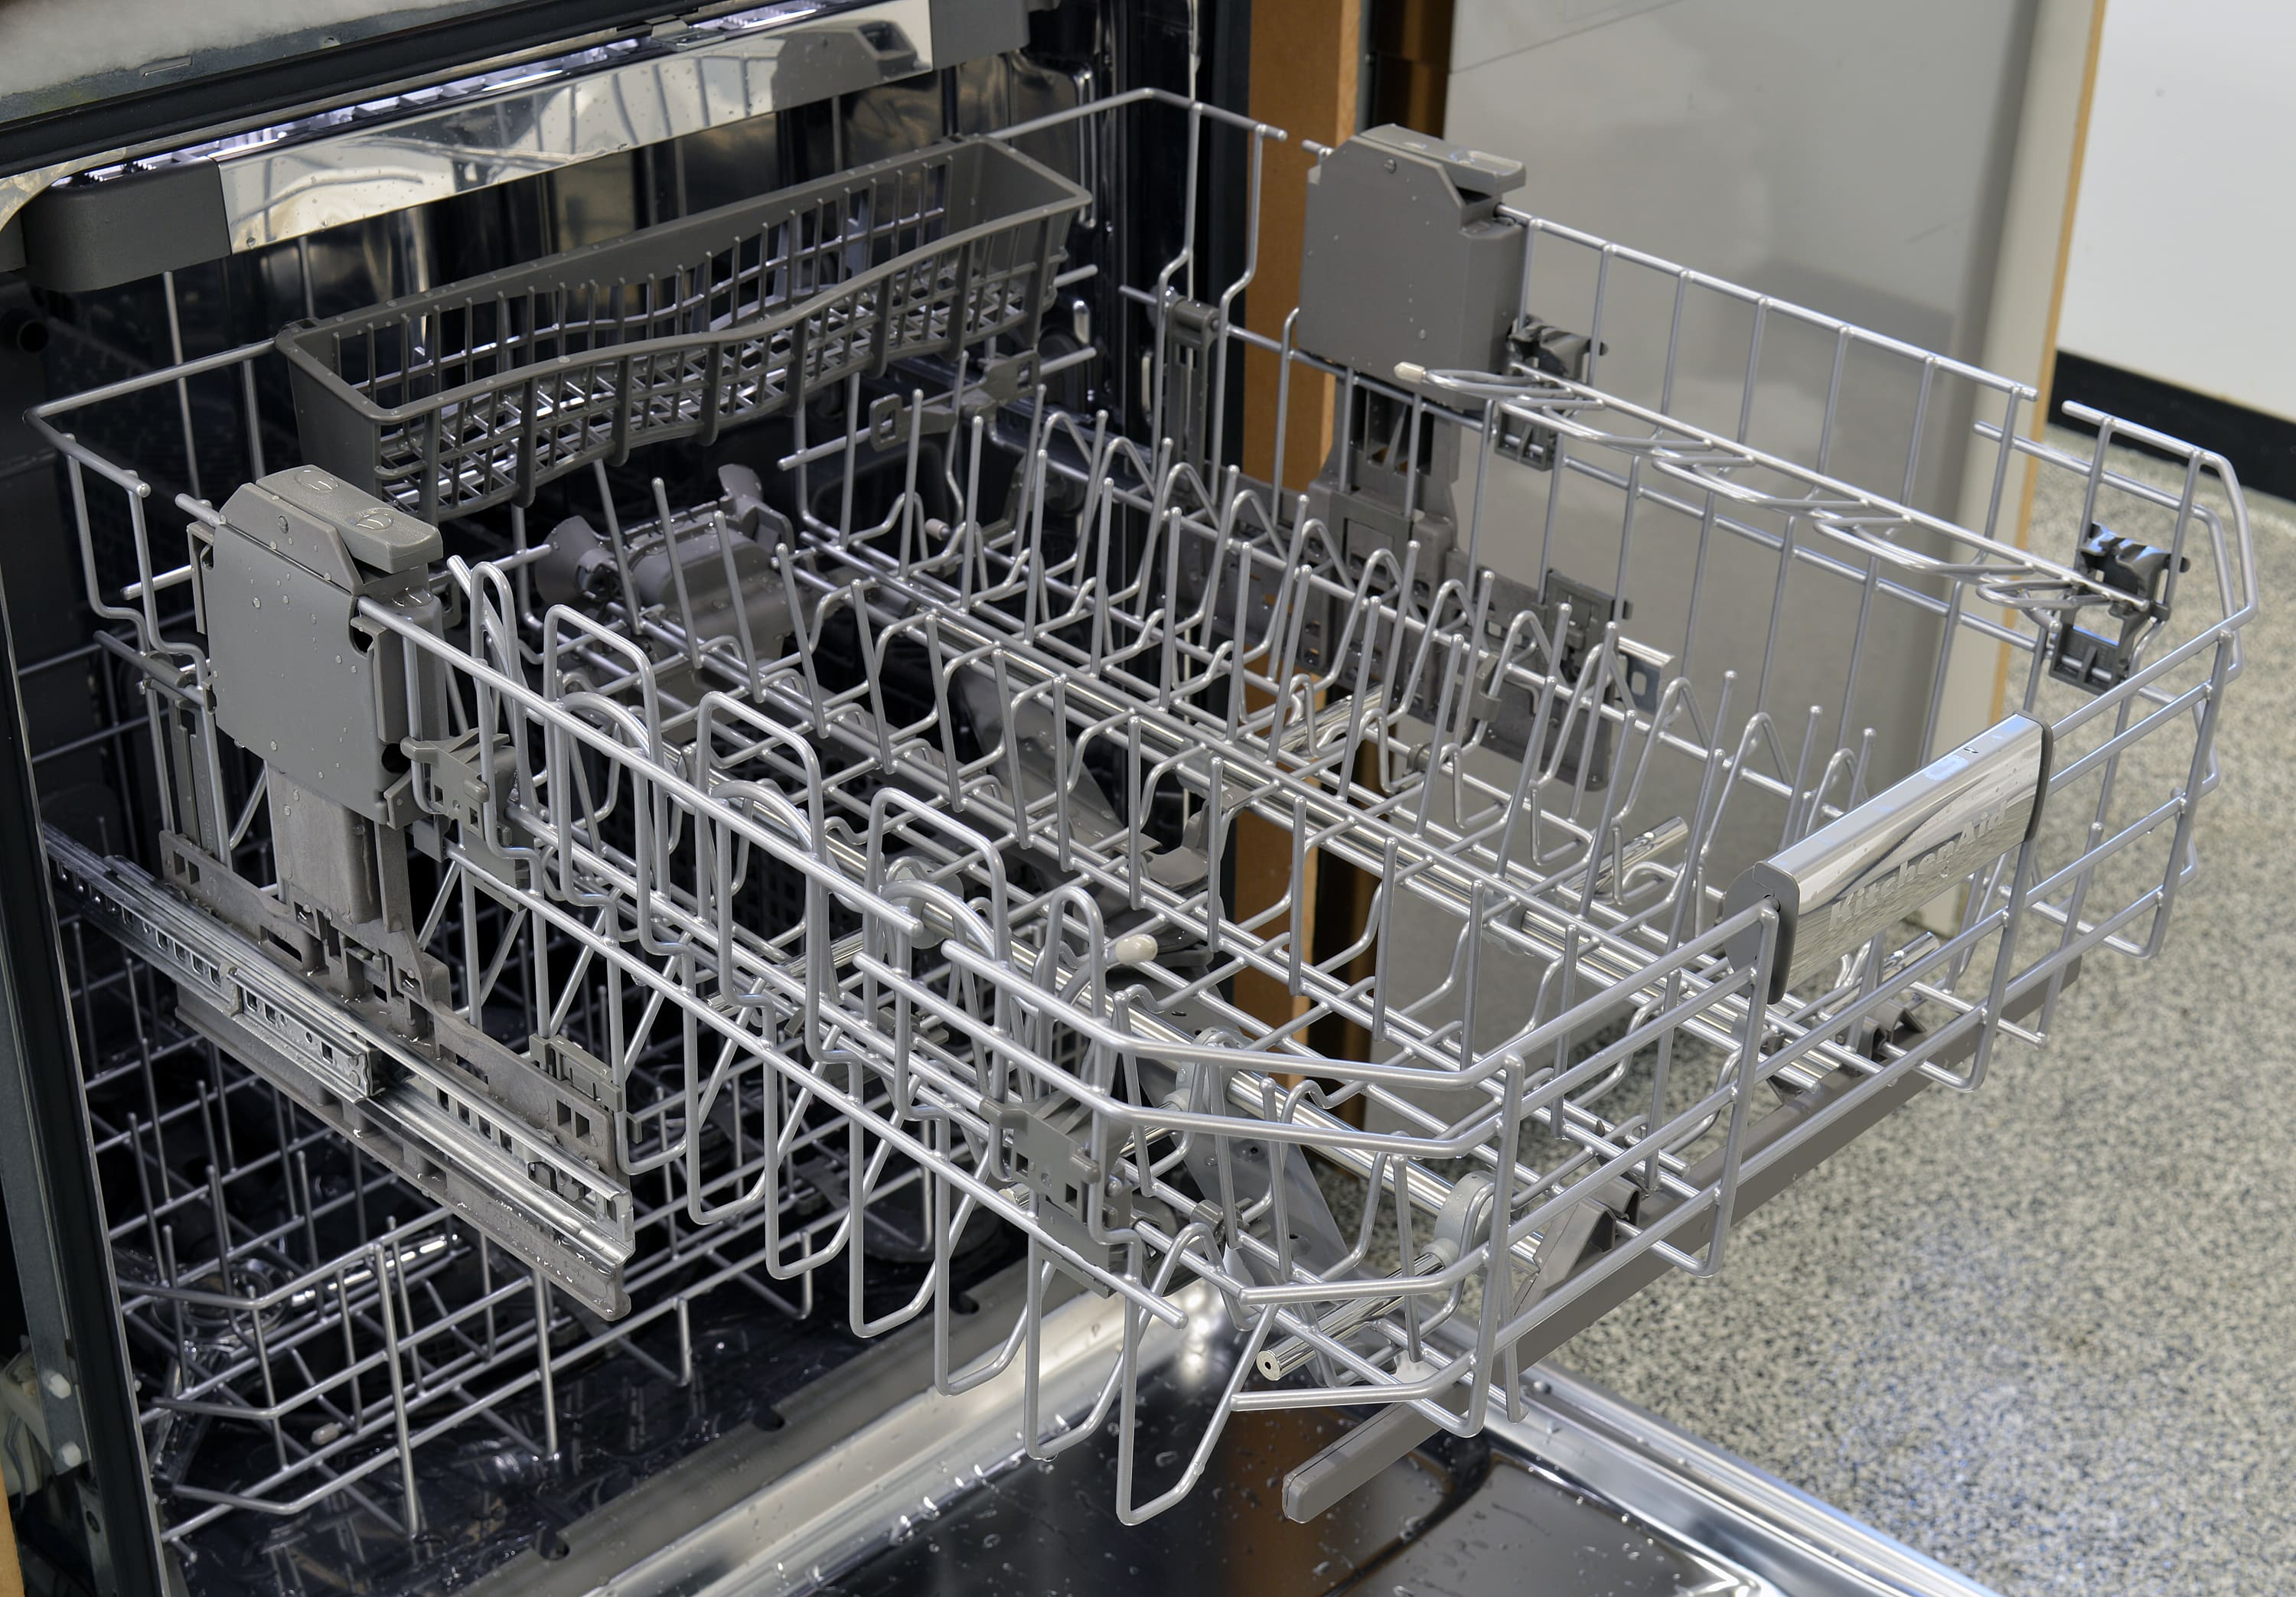 Kitchenaid Kdtm704ess Dishwasher Review Reviewed Dishwashers